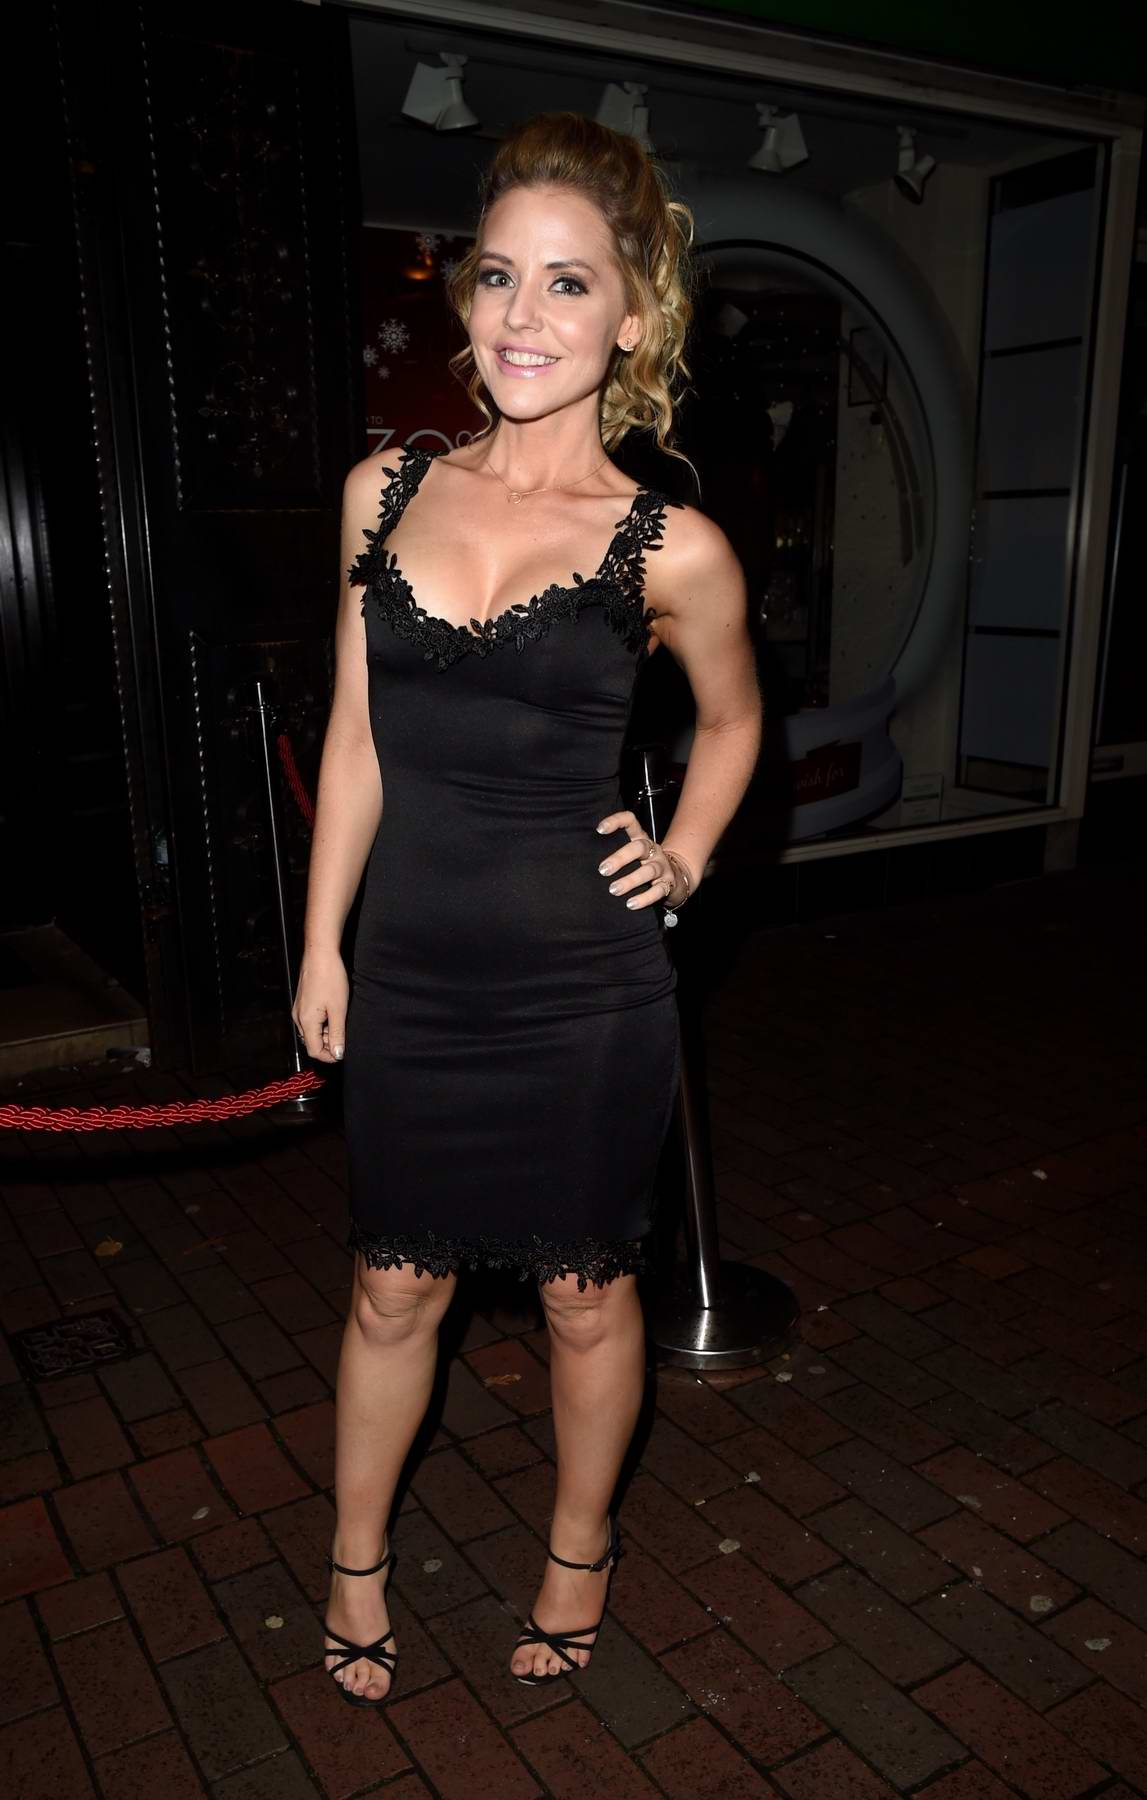 Stephanie Waring on a night out at Symposium in Wilmslow in Cheshire, UK